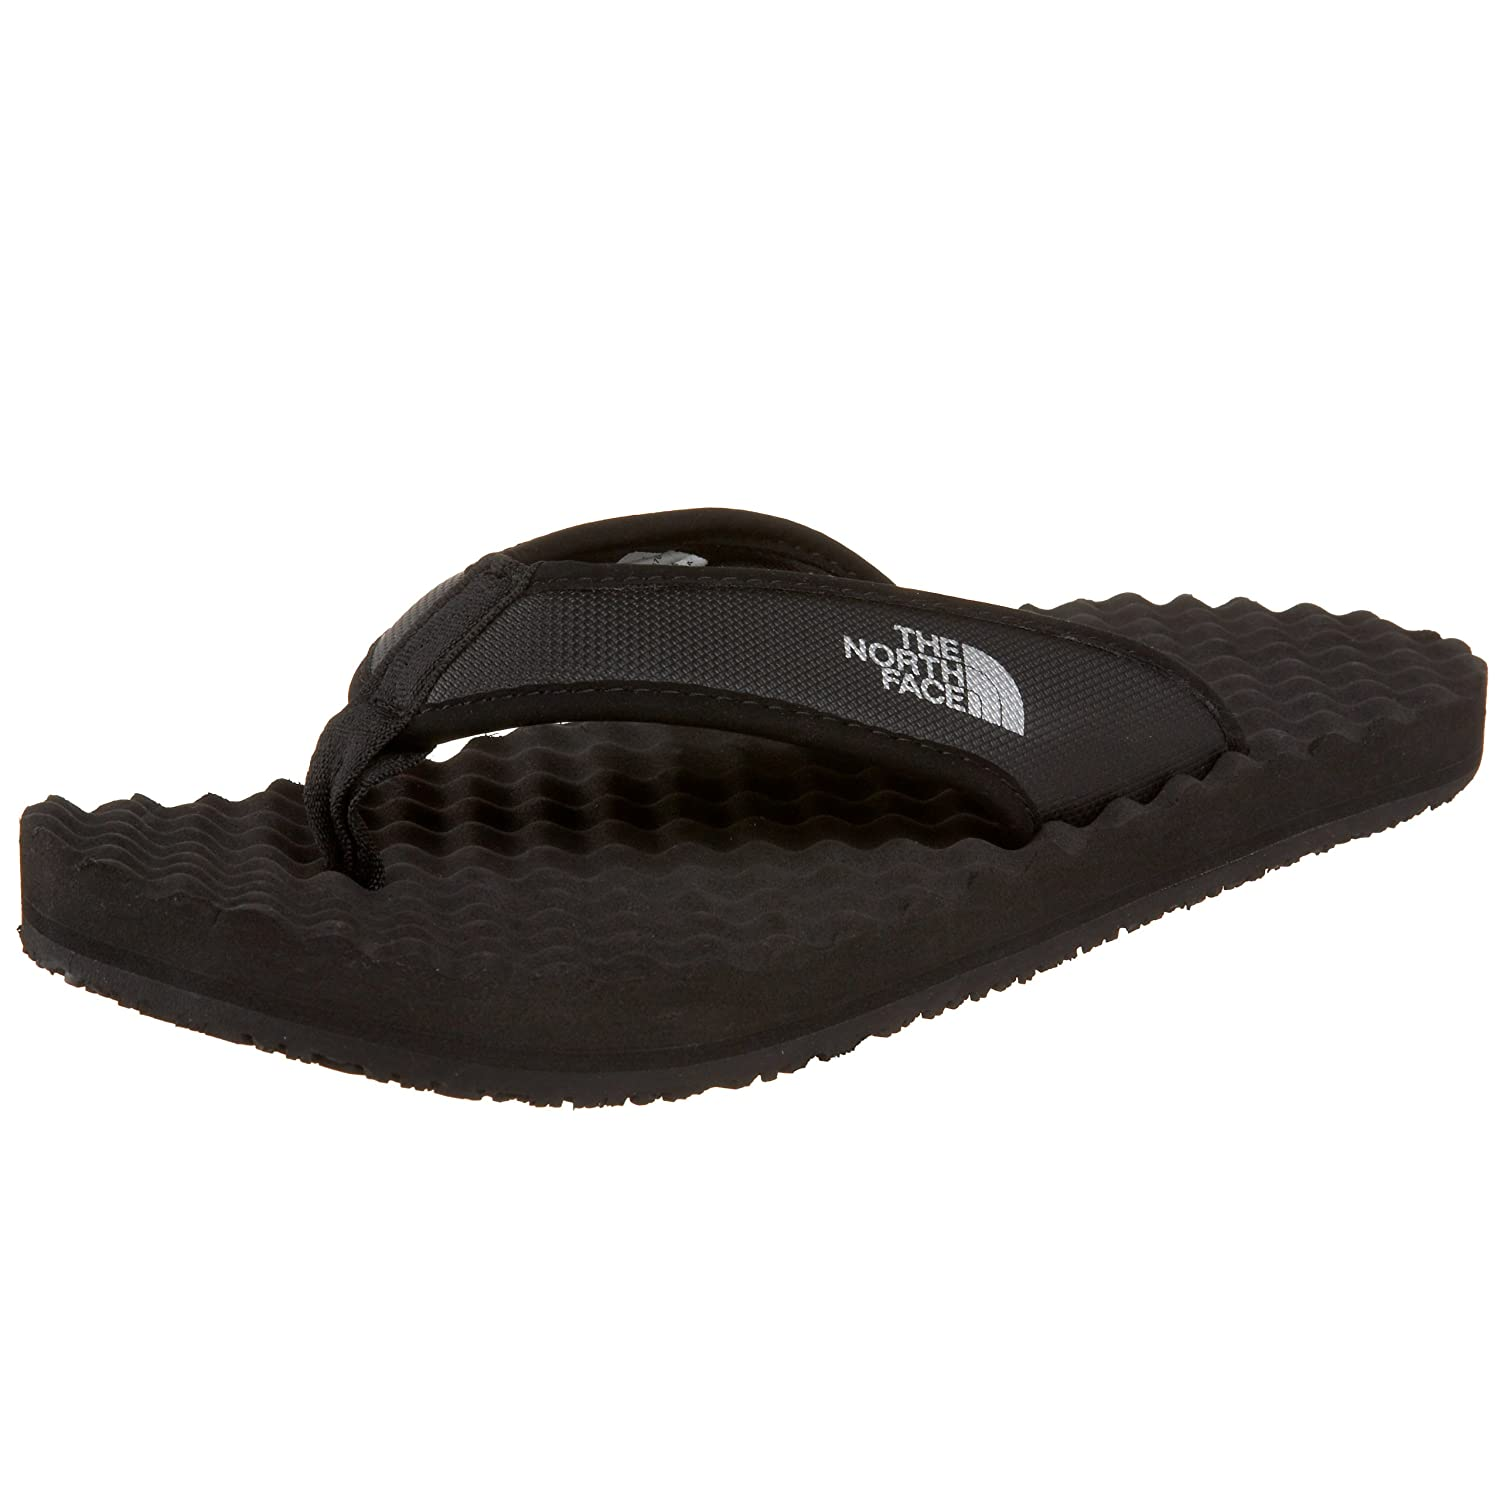 TALLA 39 EU. The North Face M Basecamp Flipflop, Zapatos de Playa y Piscina para Hombre